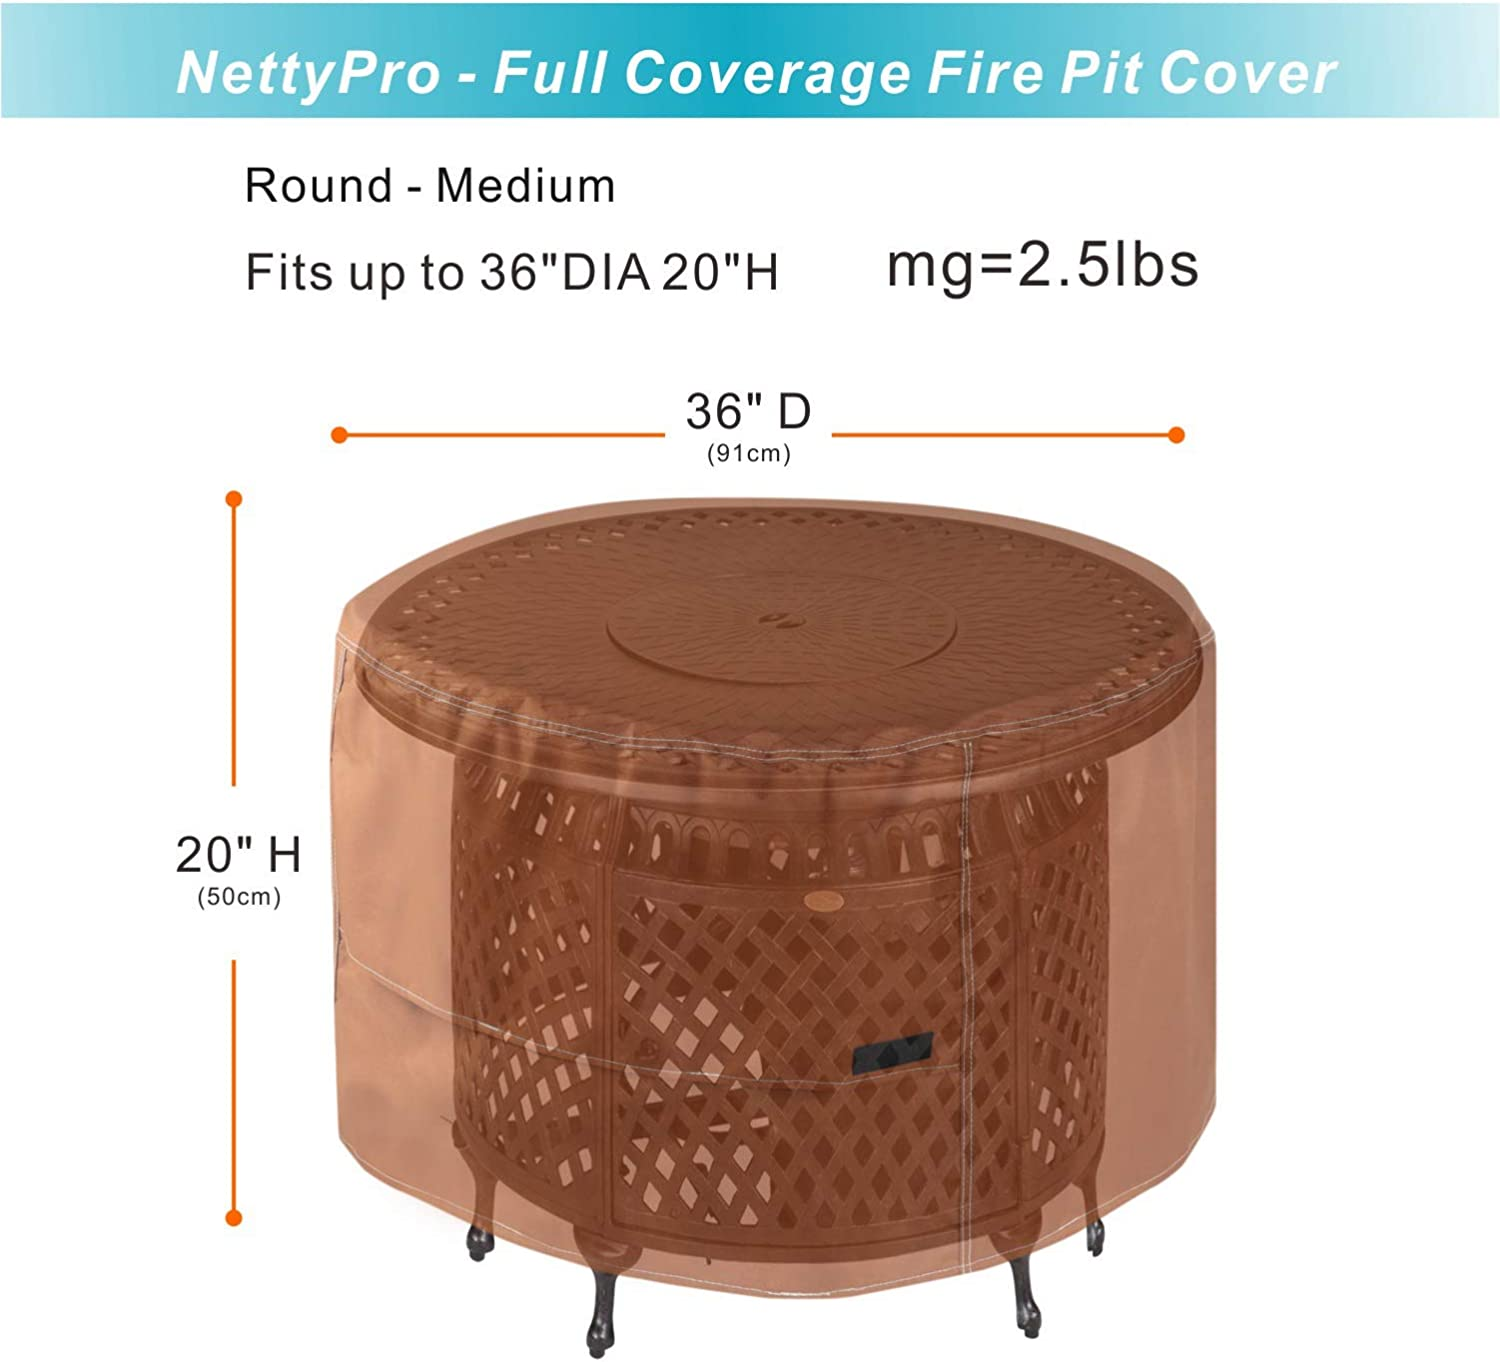 NettyPro Outdoor Patio Fire Pit Cover Round 36 inch 600D Heavy Duty Waterproof Fire Bowl Cover Brown